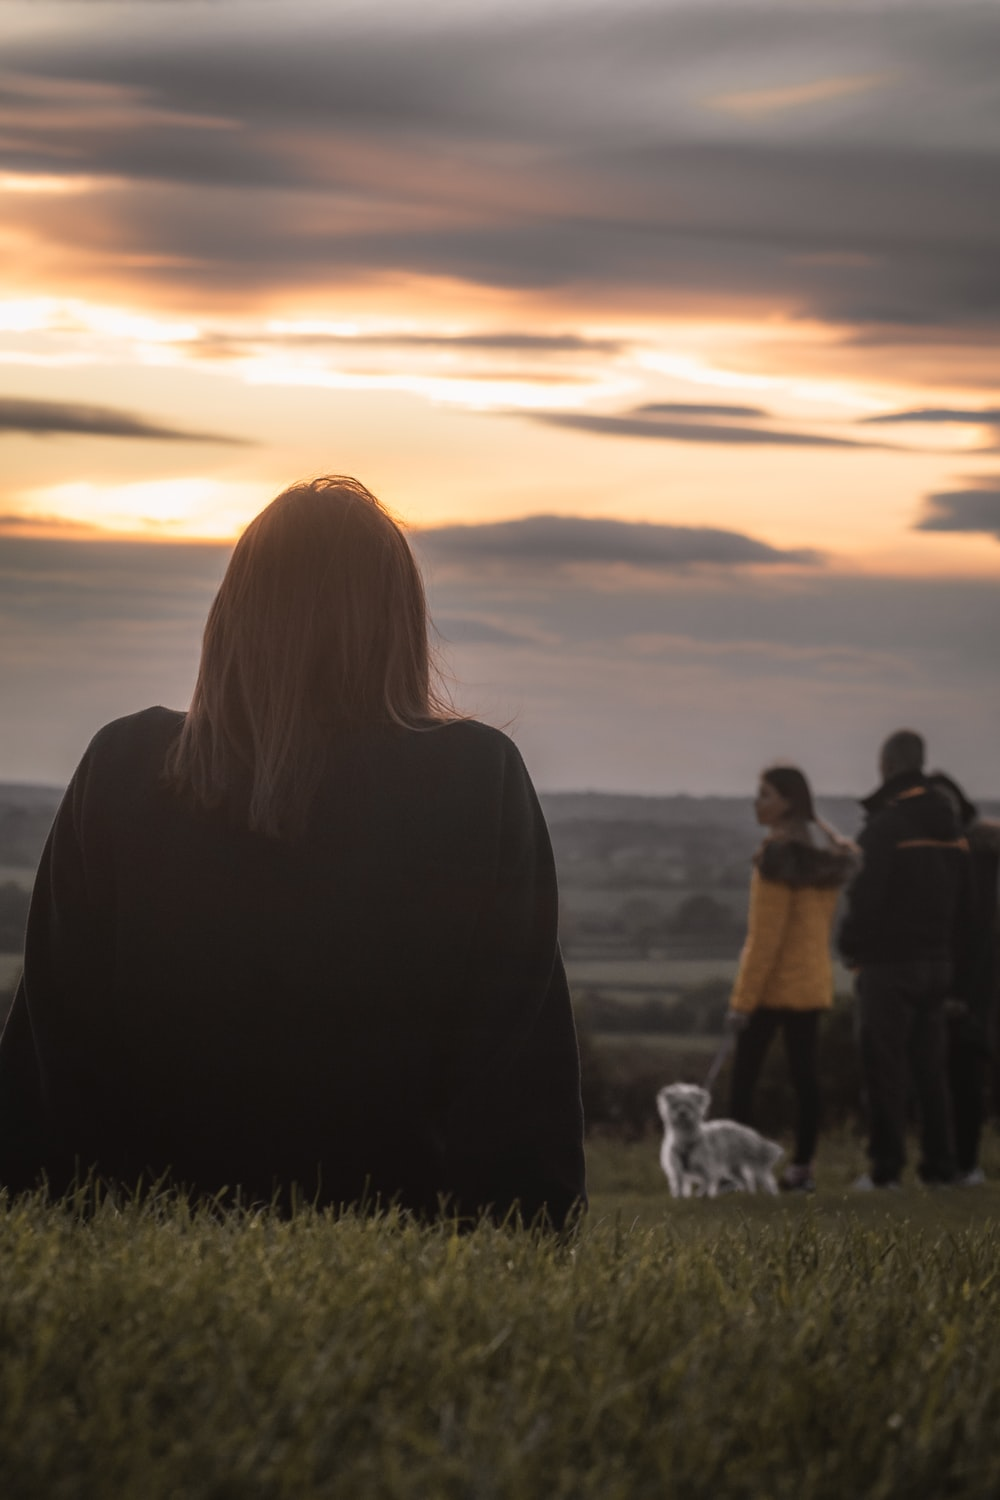 people standing on green grass field during sunset